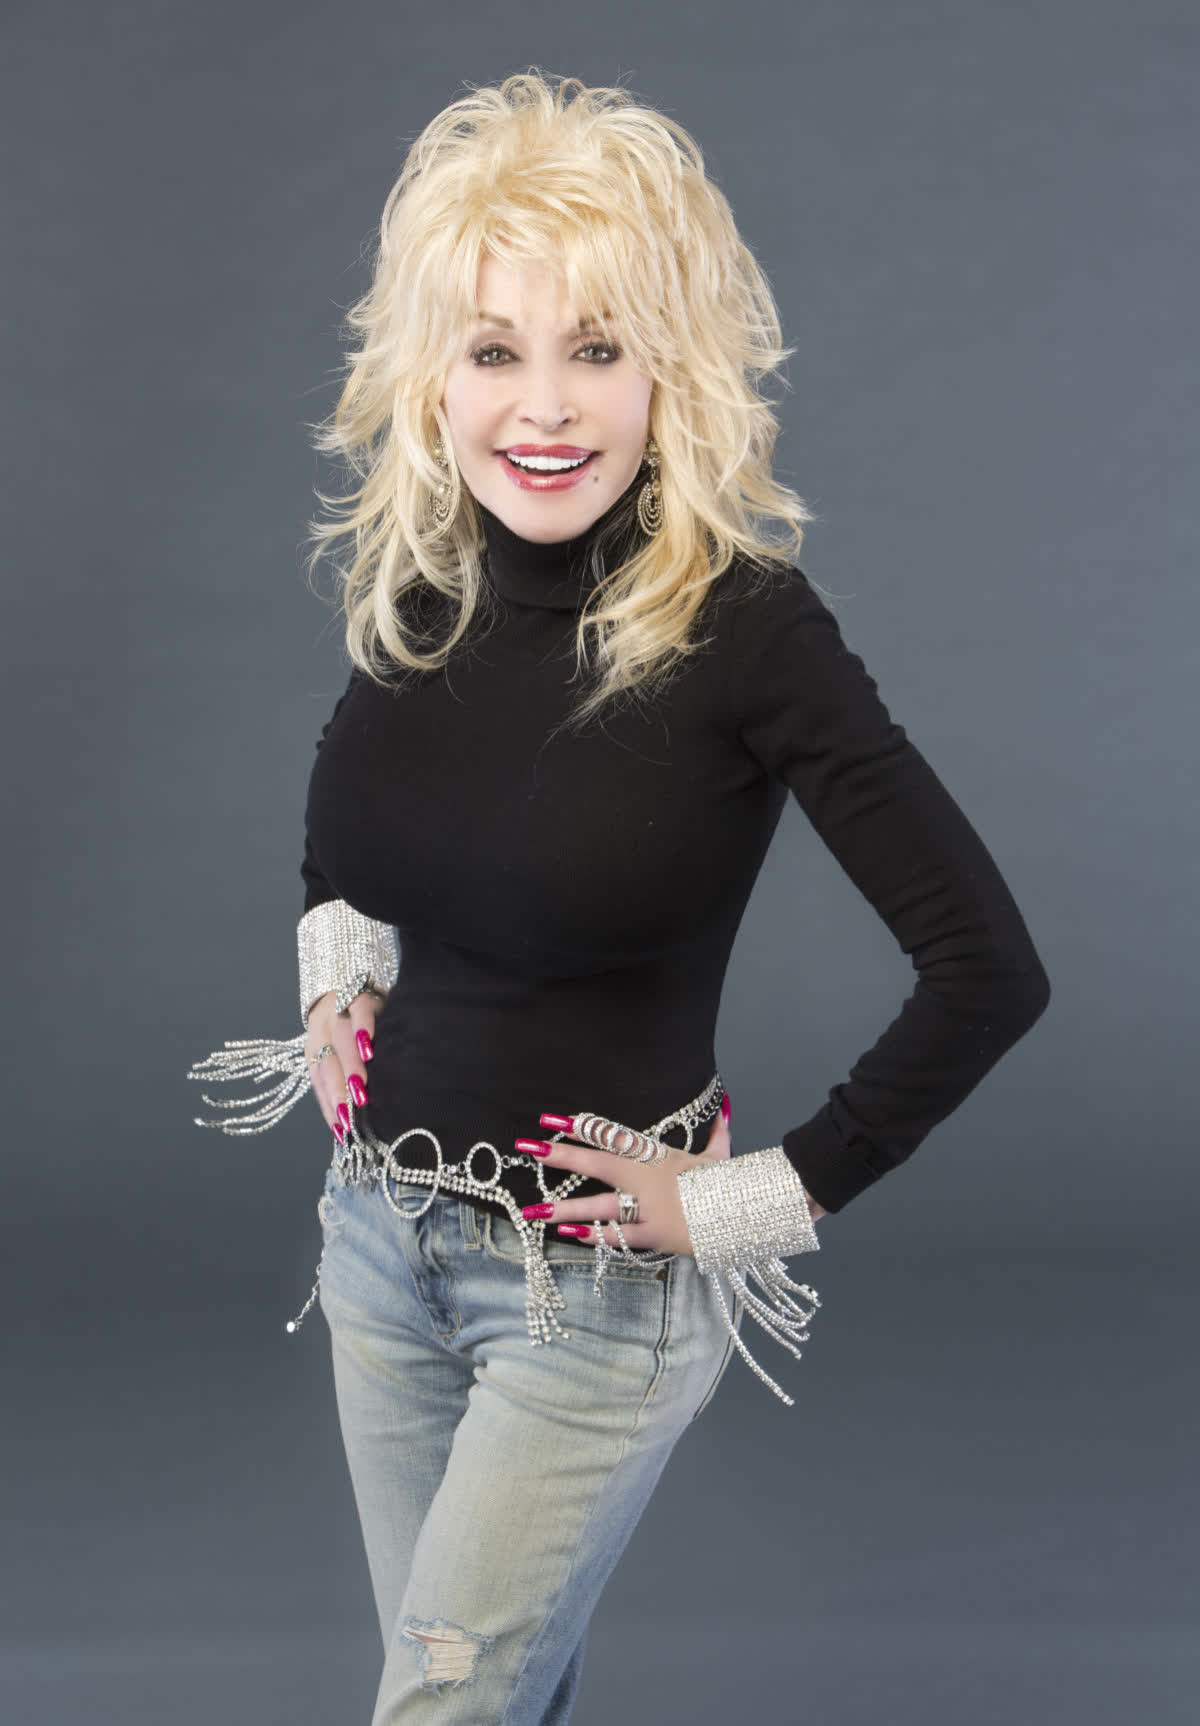 Dolly Parton Bio Age Height Weight Body Measurements Net